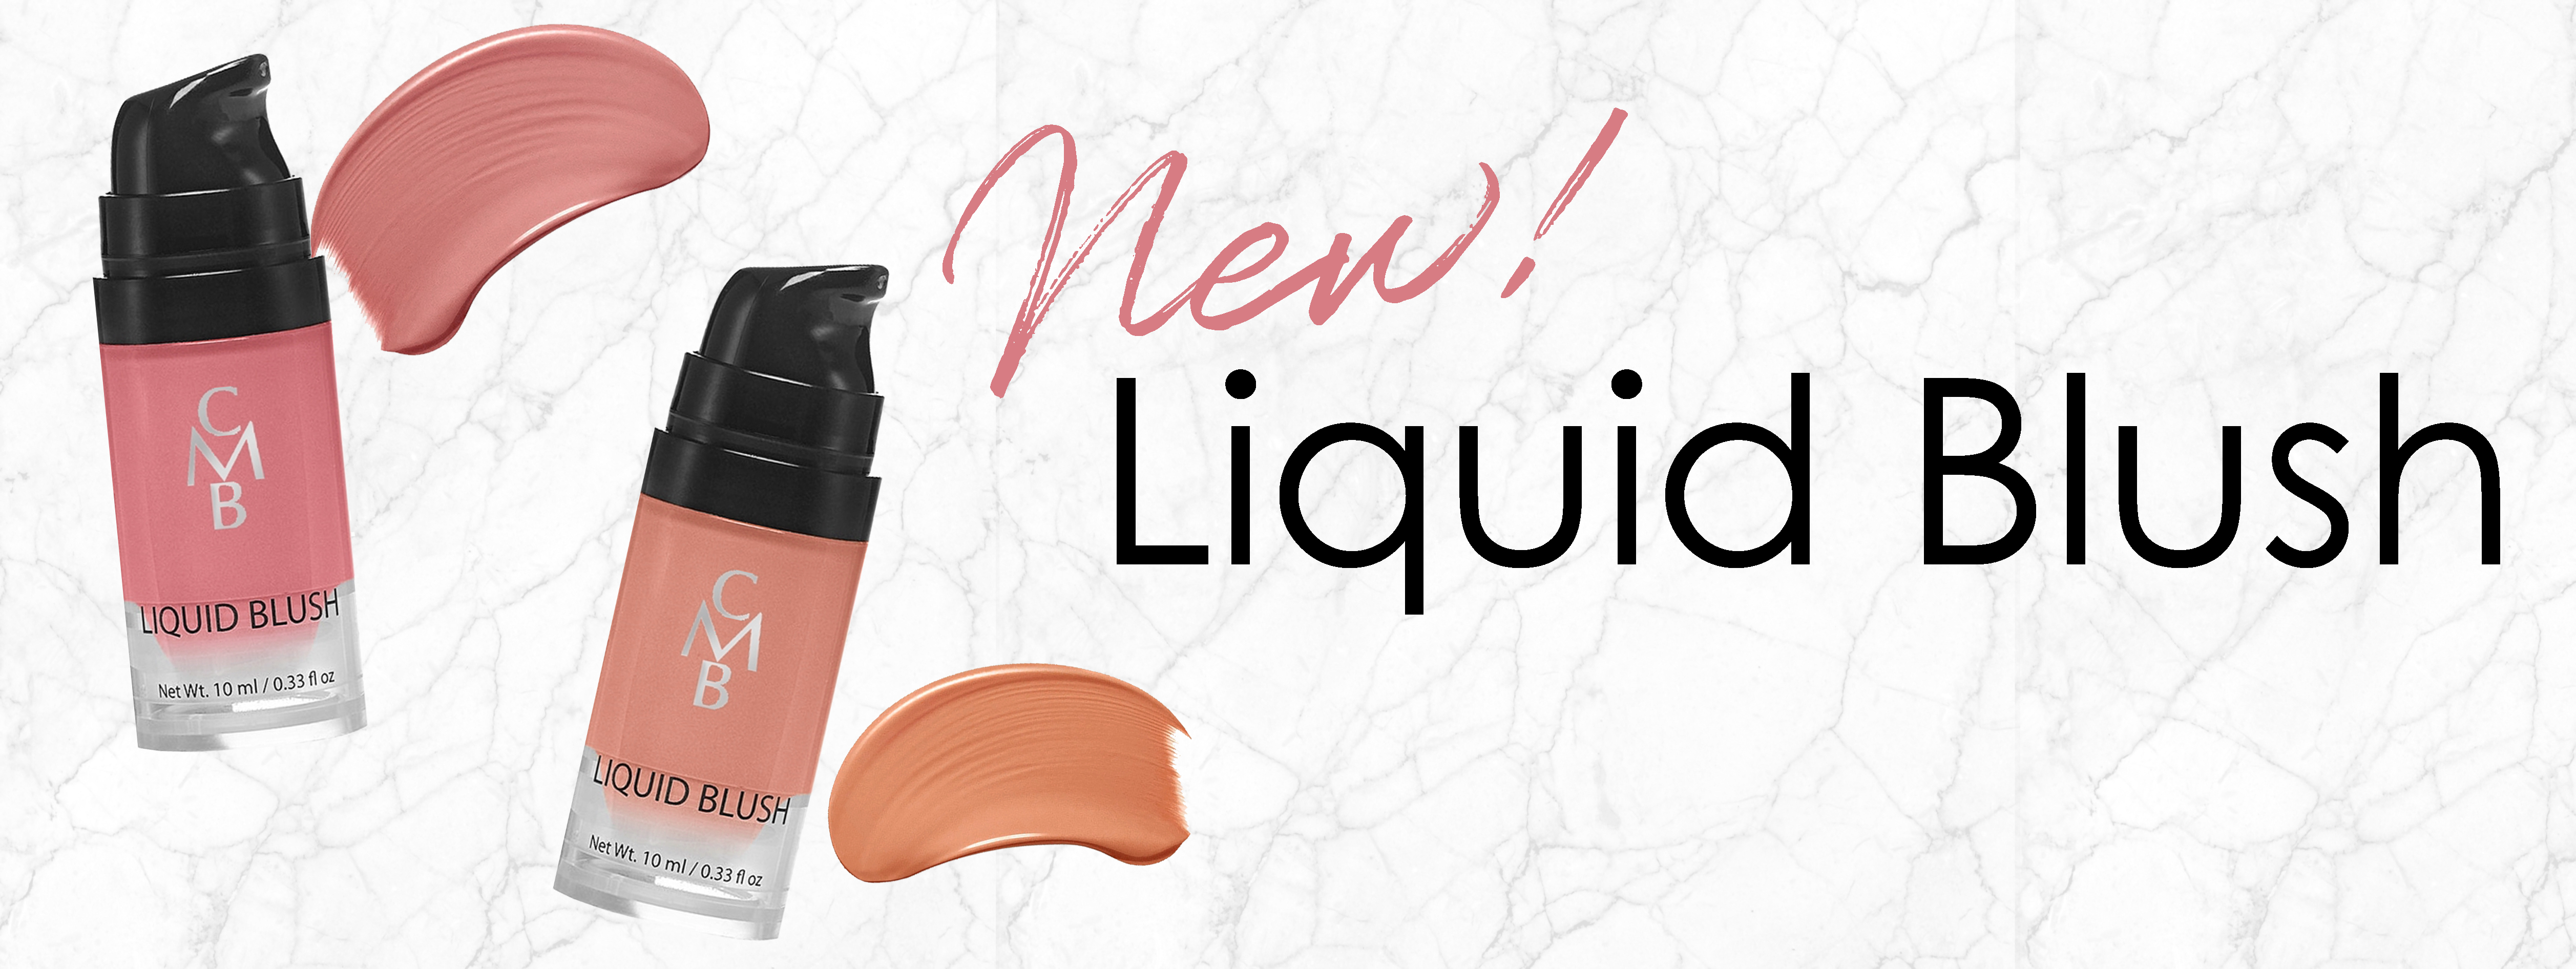 New Liquid Blush